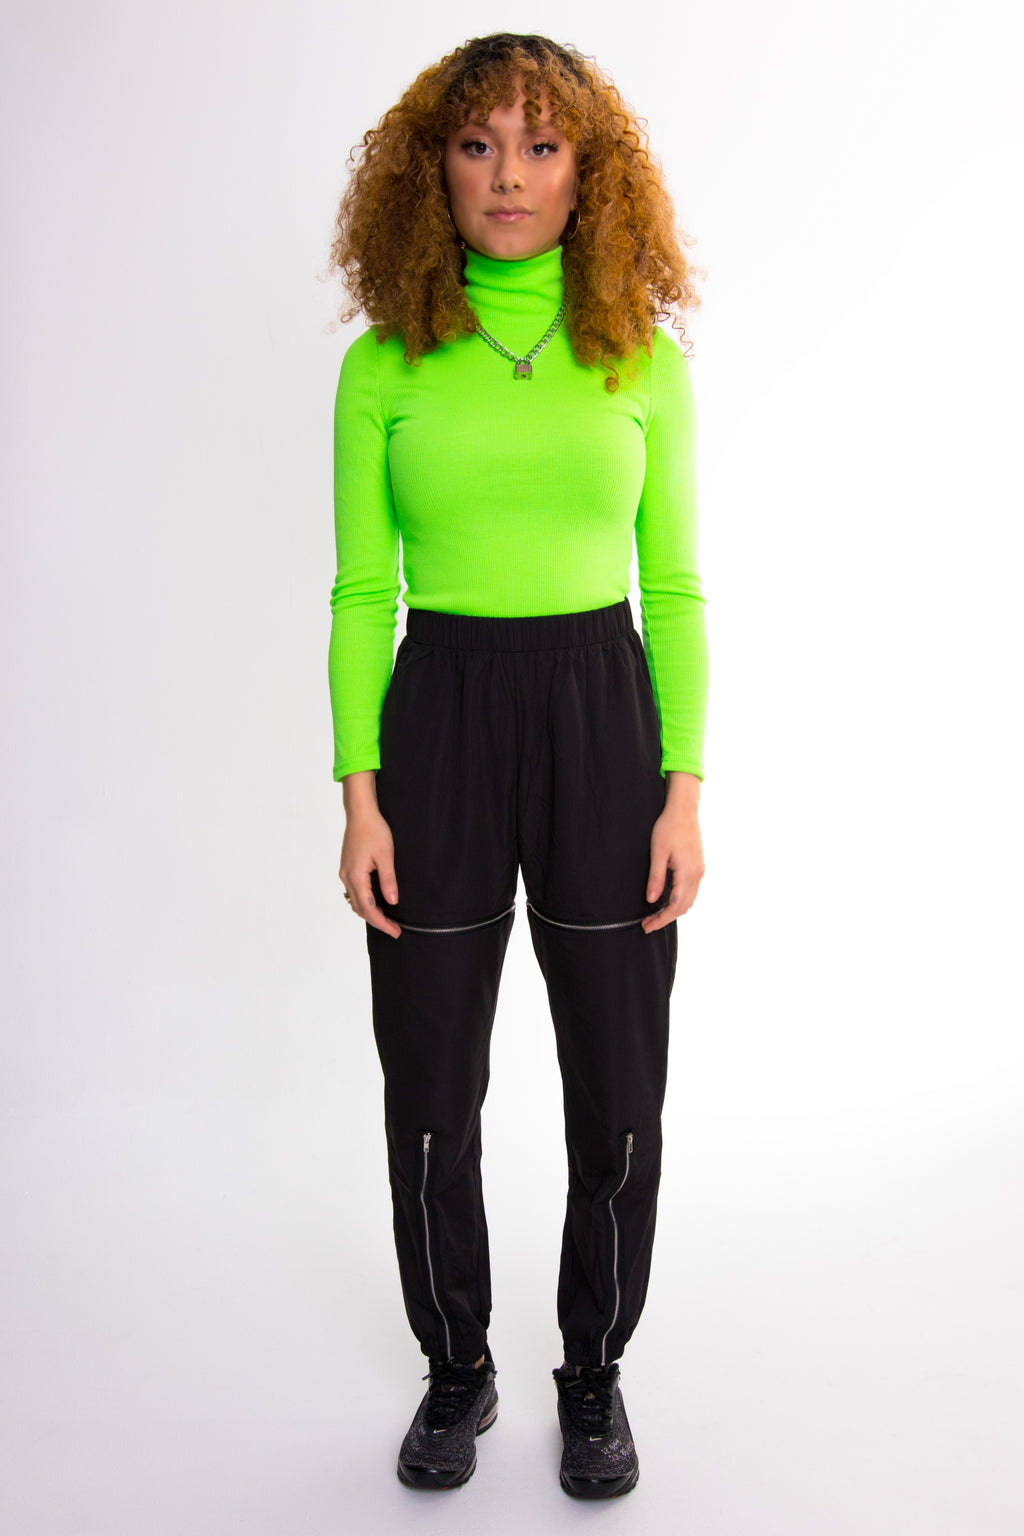 Slime Green Turtleneck